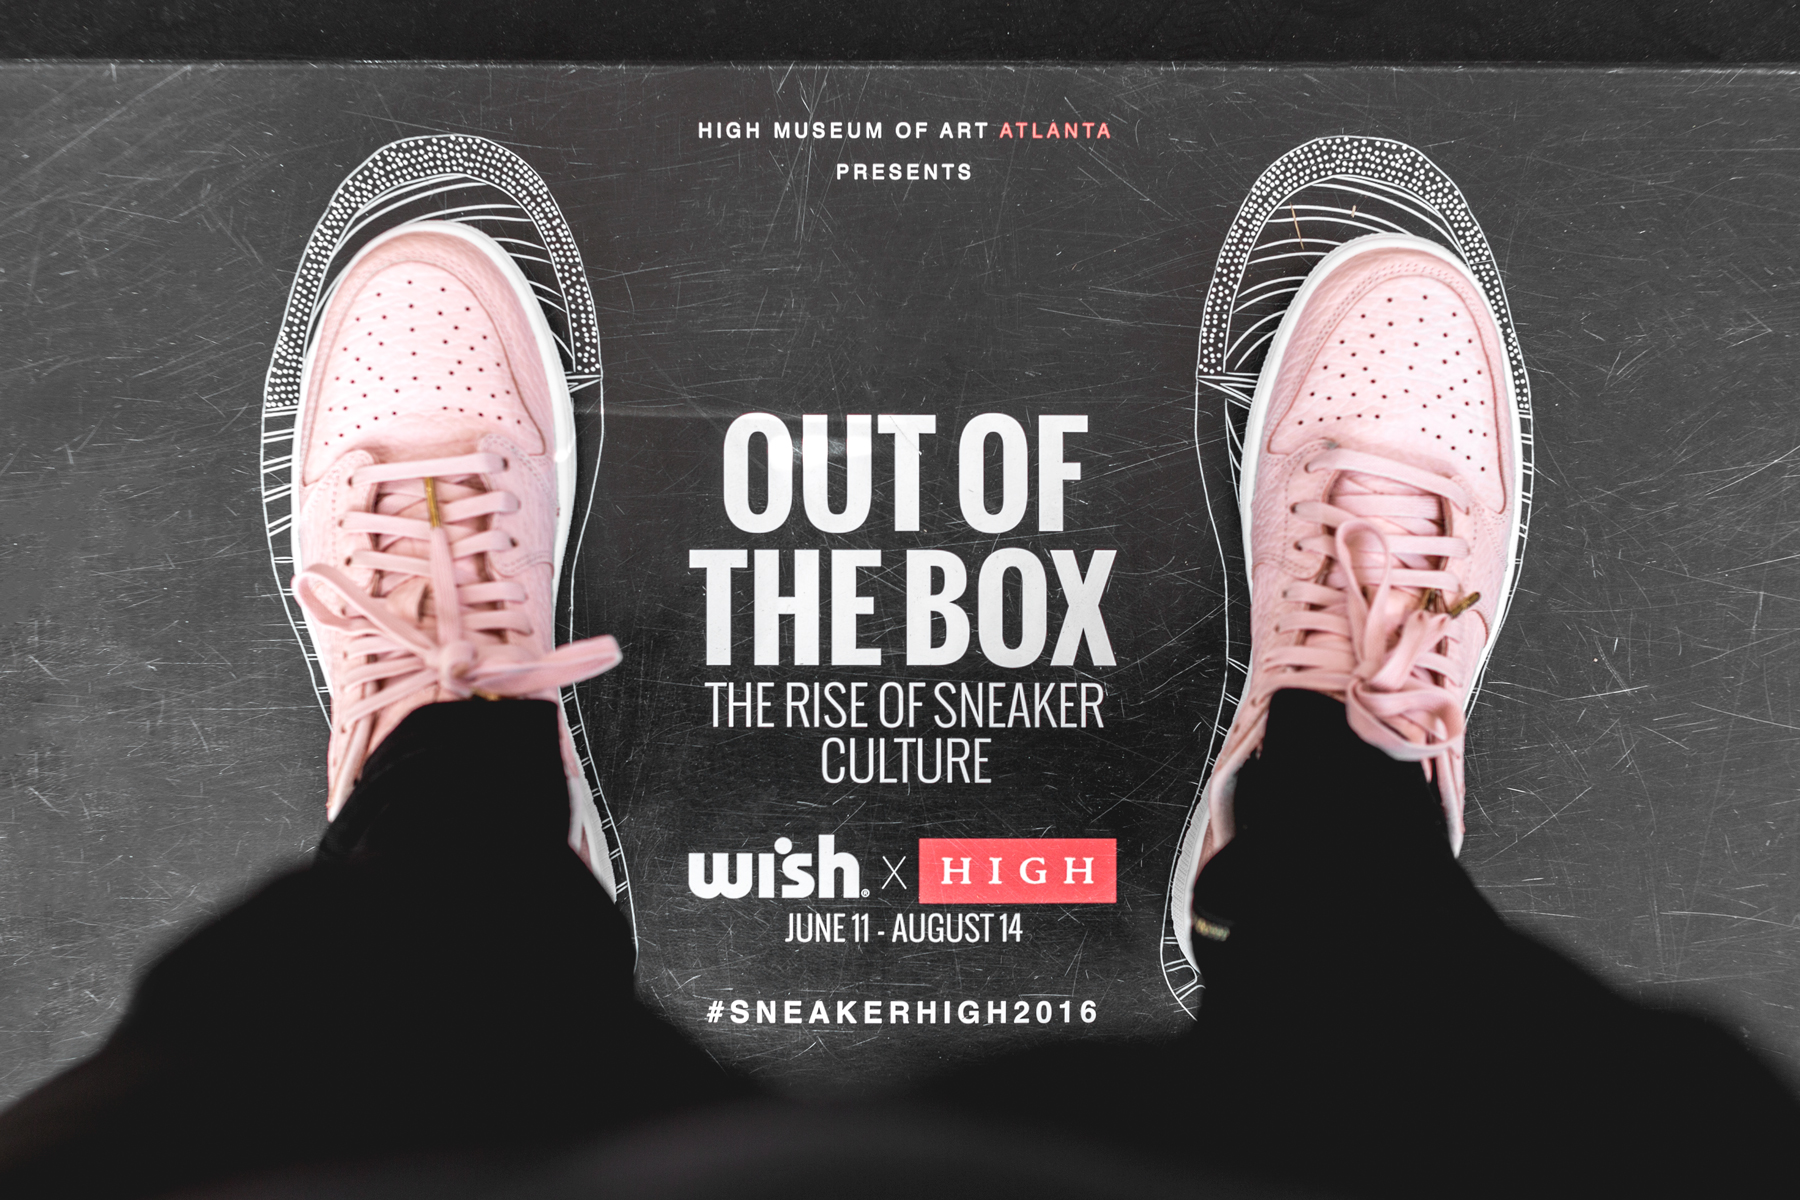 WISH x High Museum Presents: The Rise of Sneaker Culture